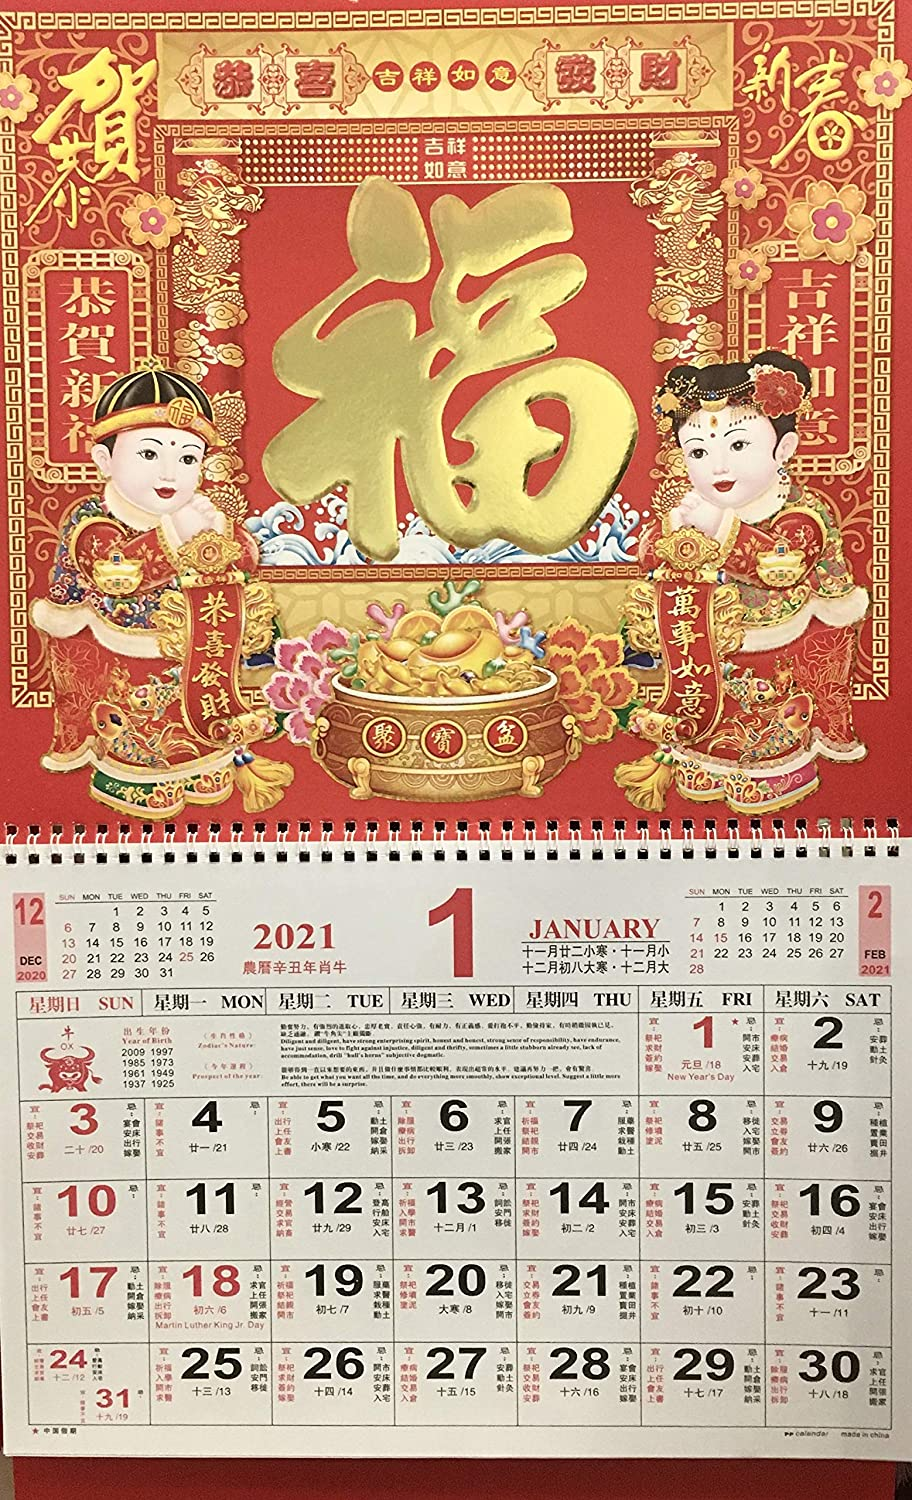 "2021 Chinese Calendar Monthly - for Year of The Ox -""Children Greeting Bring Good Luck to You"" - Measure: 25.5"" x 14.5"" (XL), USA (Fishes) Chinese and USA Holidays are Printed + Free Zodiac Card"